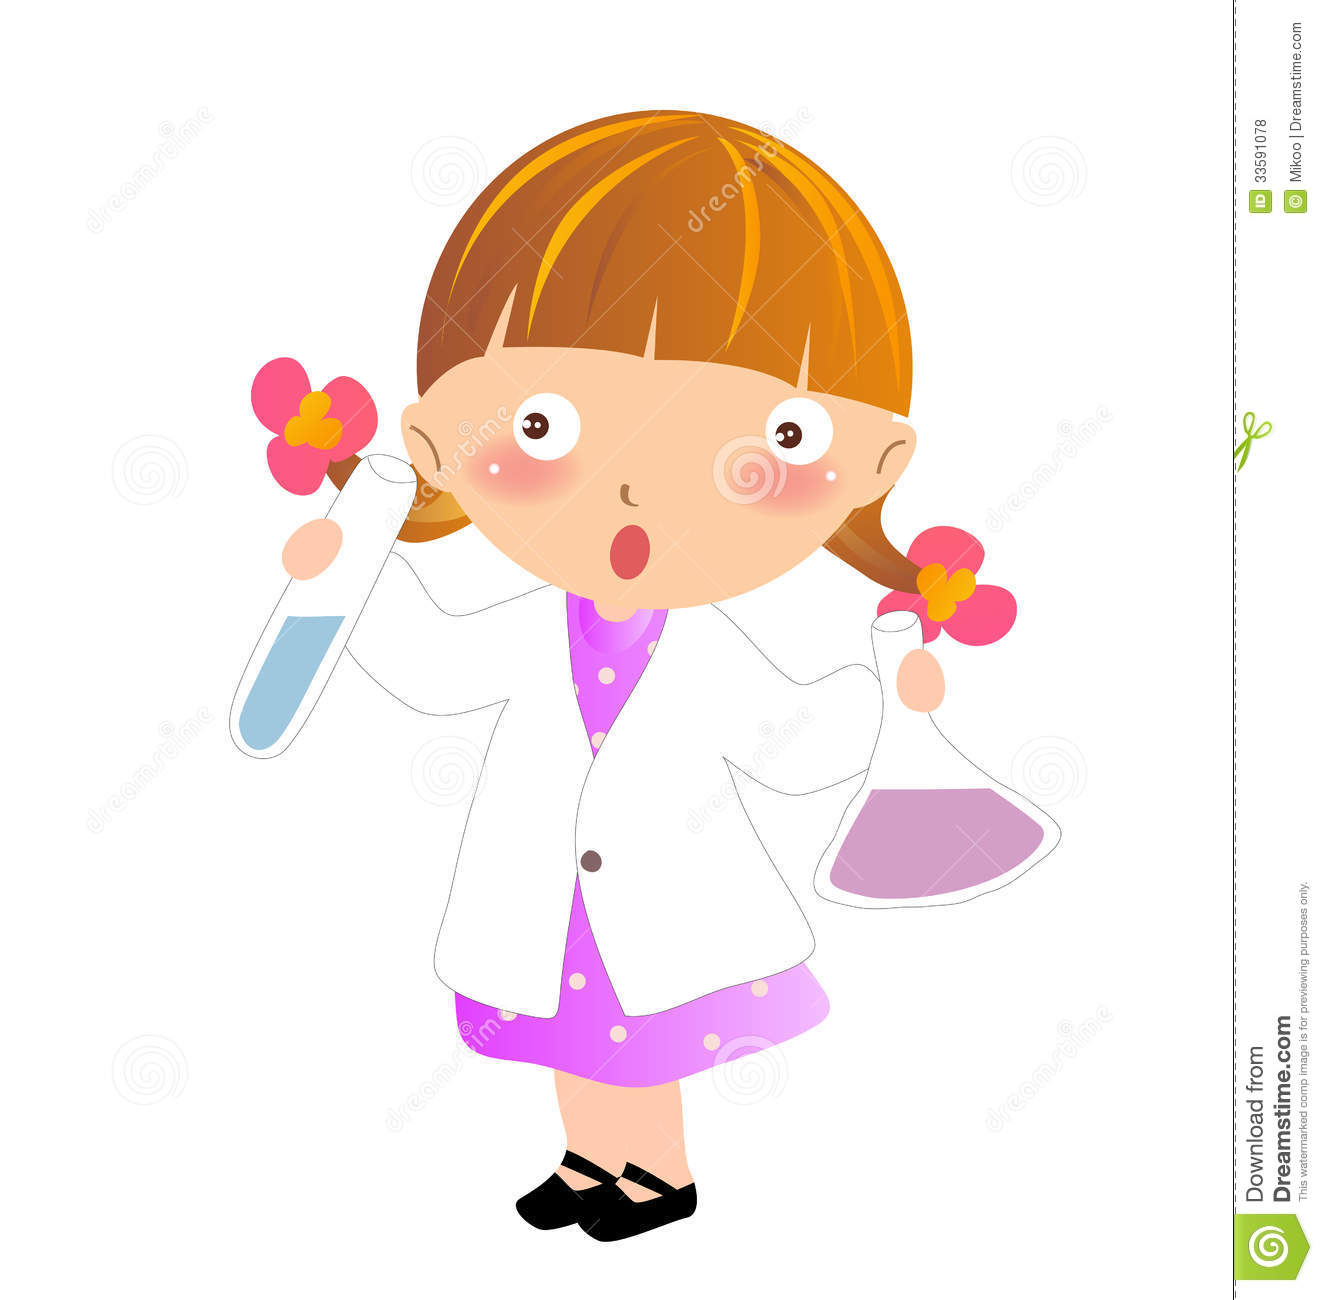 A young scientist stock illustration. Image of girl, art ...